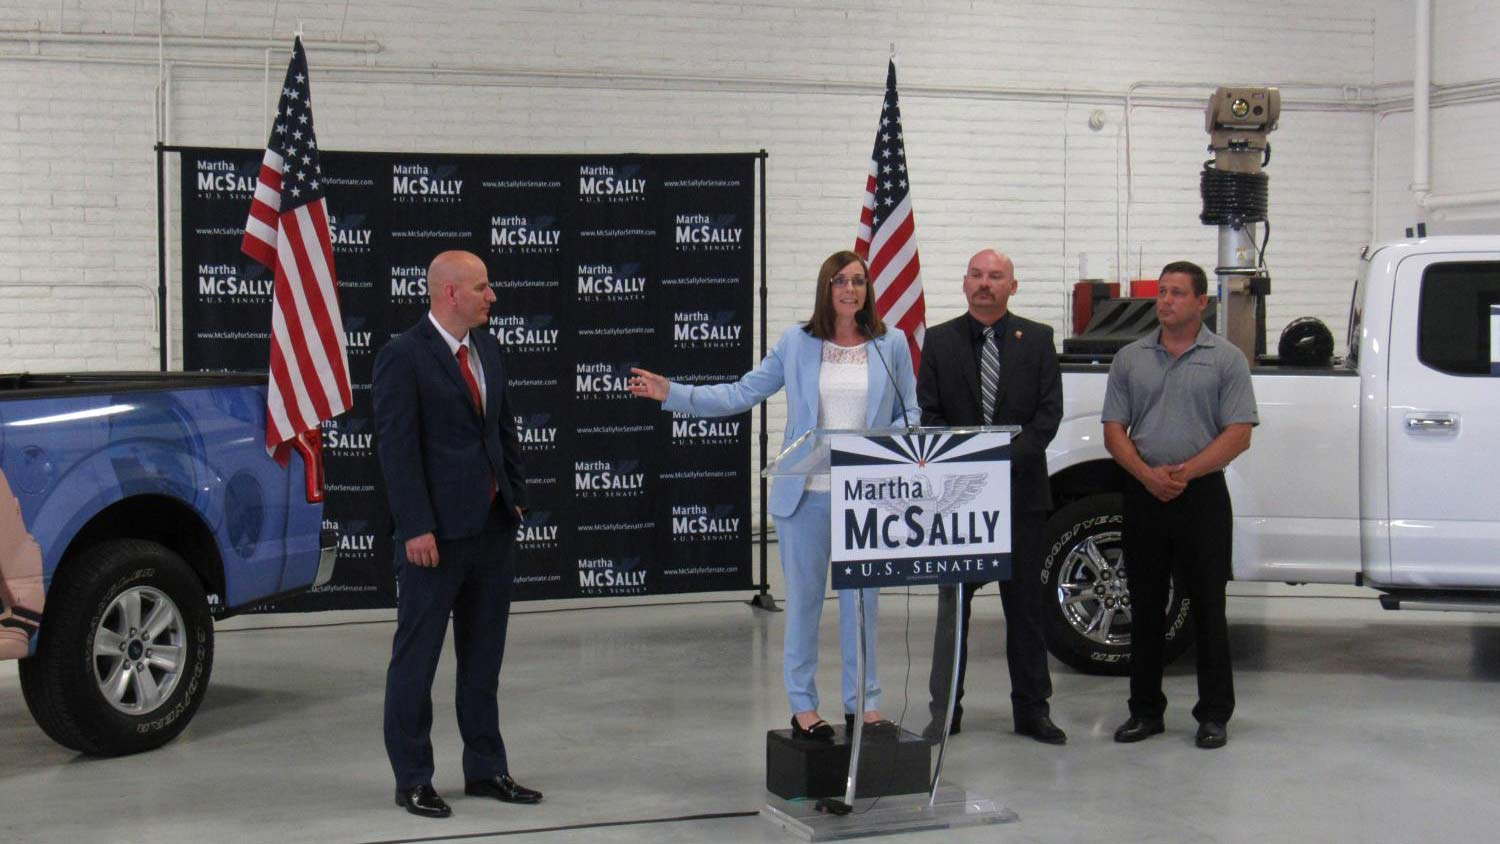 Mcsally border patrol